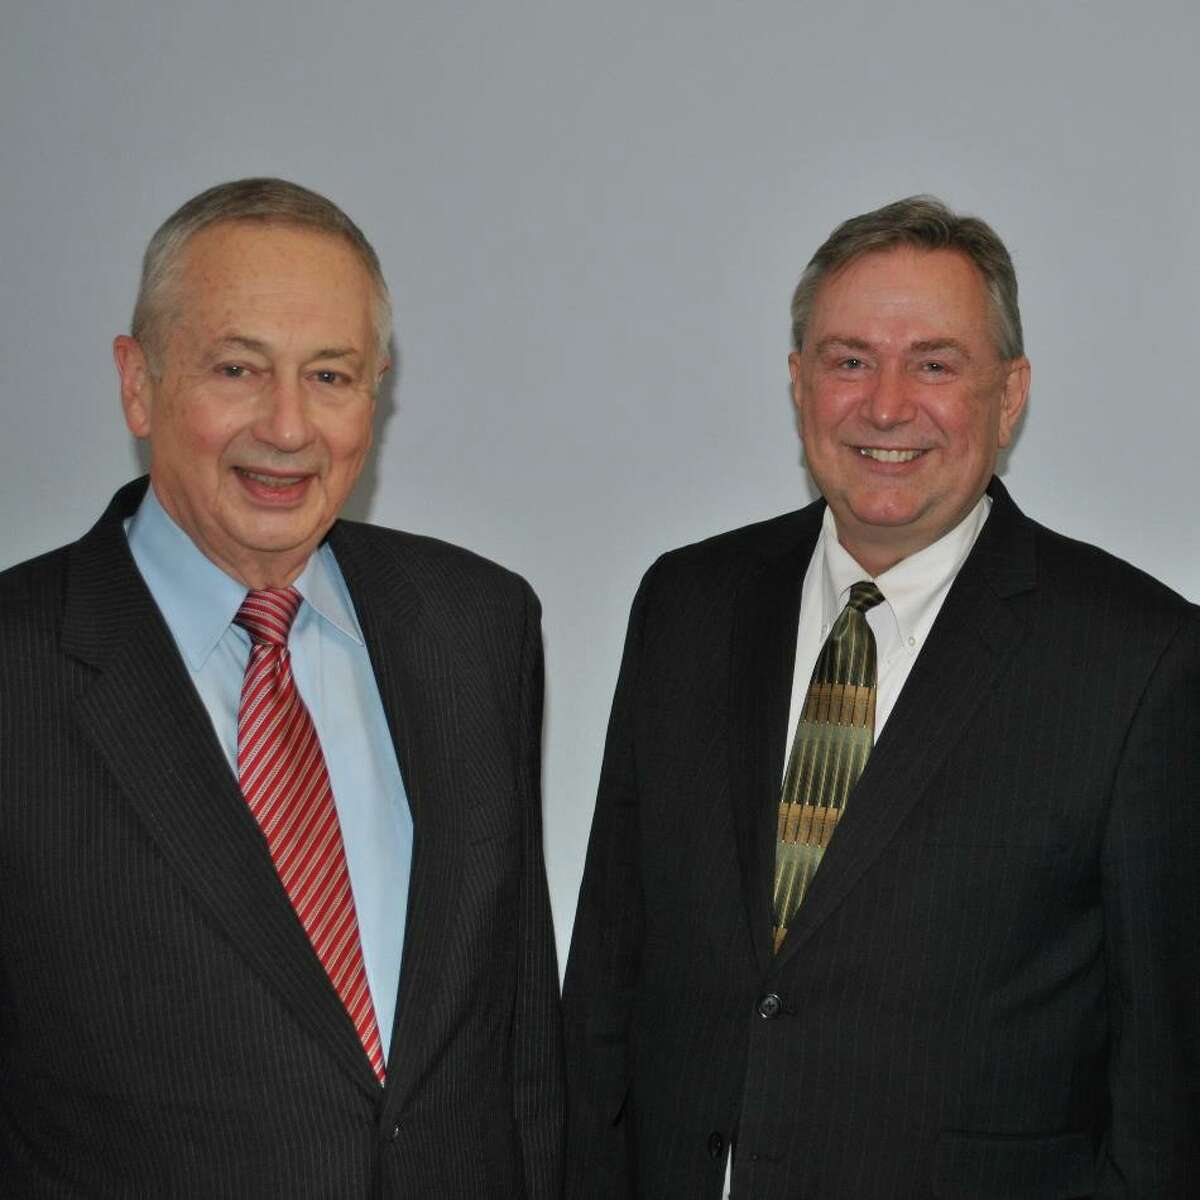 """Congressman Steve Stockman and GOA Executive Director Larry Pratt paused for this quick photo on Thursday as Stockman rushed off to file the first pro-gun bill of the 113th Congress. Rep. Stockman introduced H.R.35 to restore safety to America's schools by repealing federal """"Gun Free School Zones""""."""